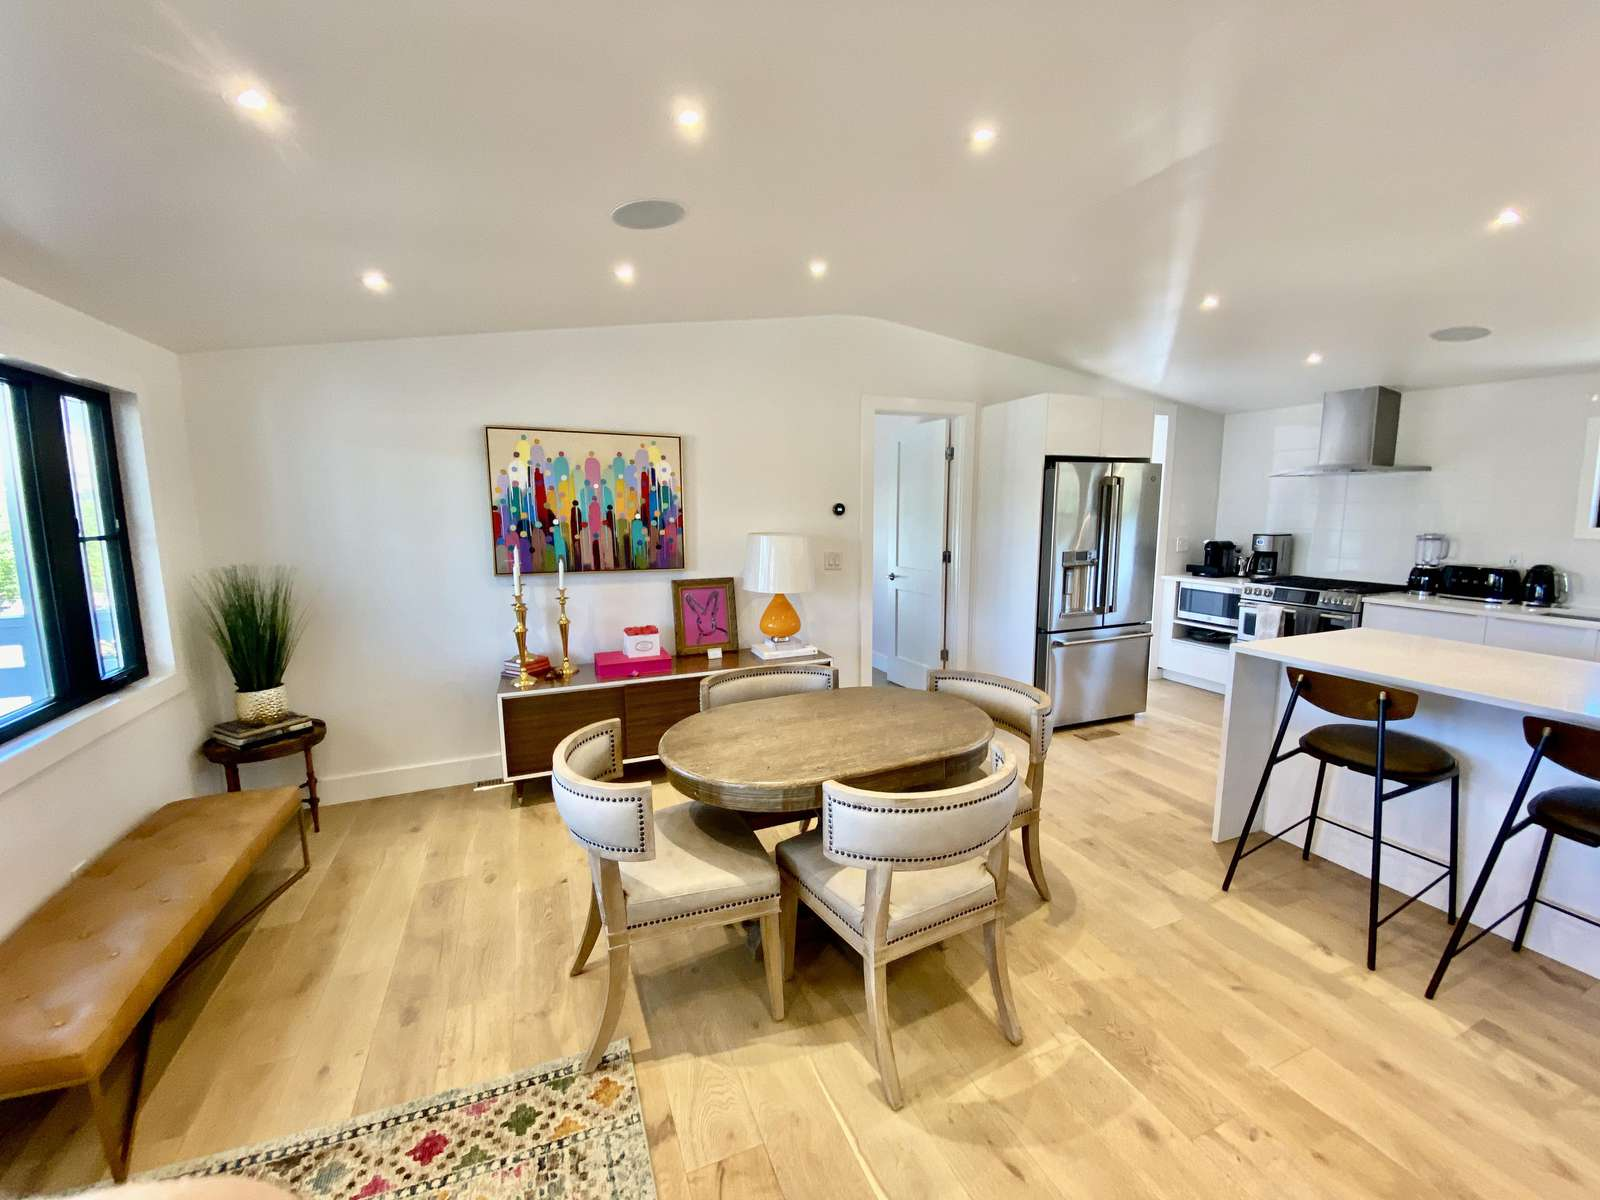 Dining area of main living space